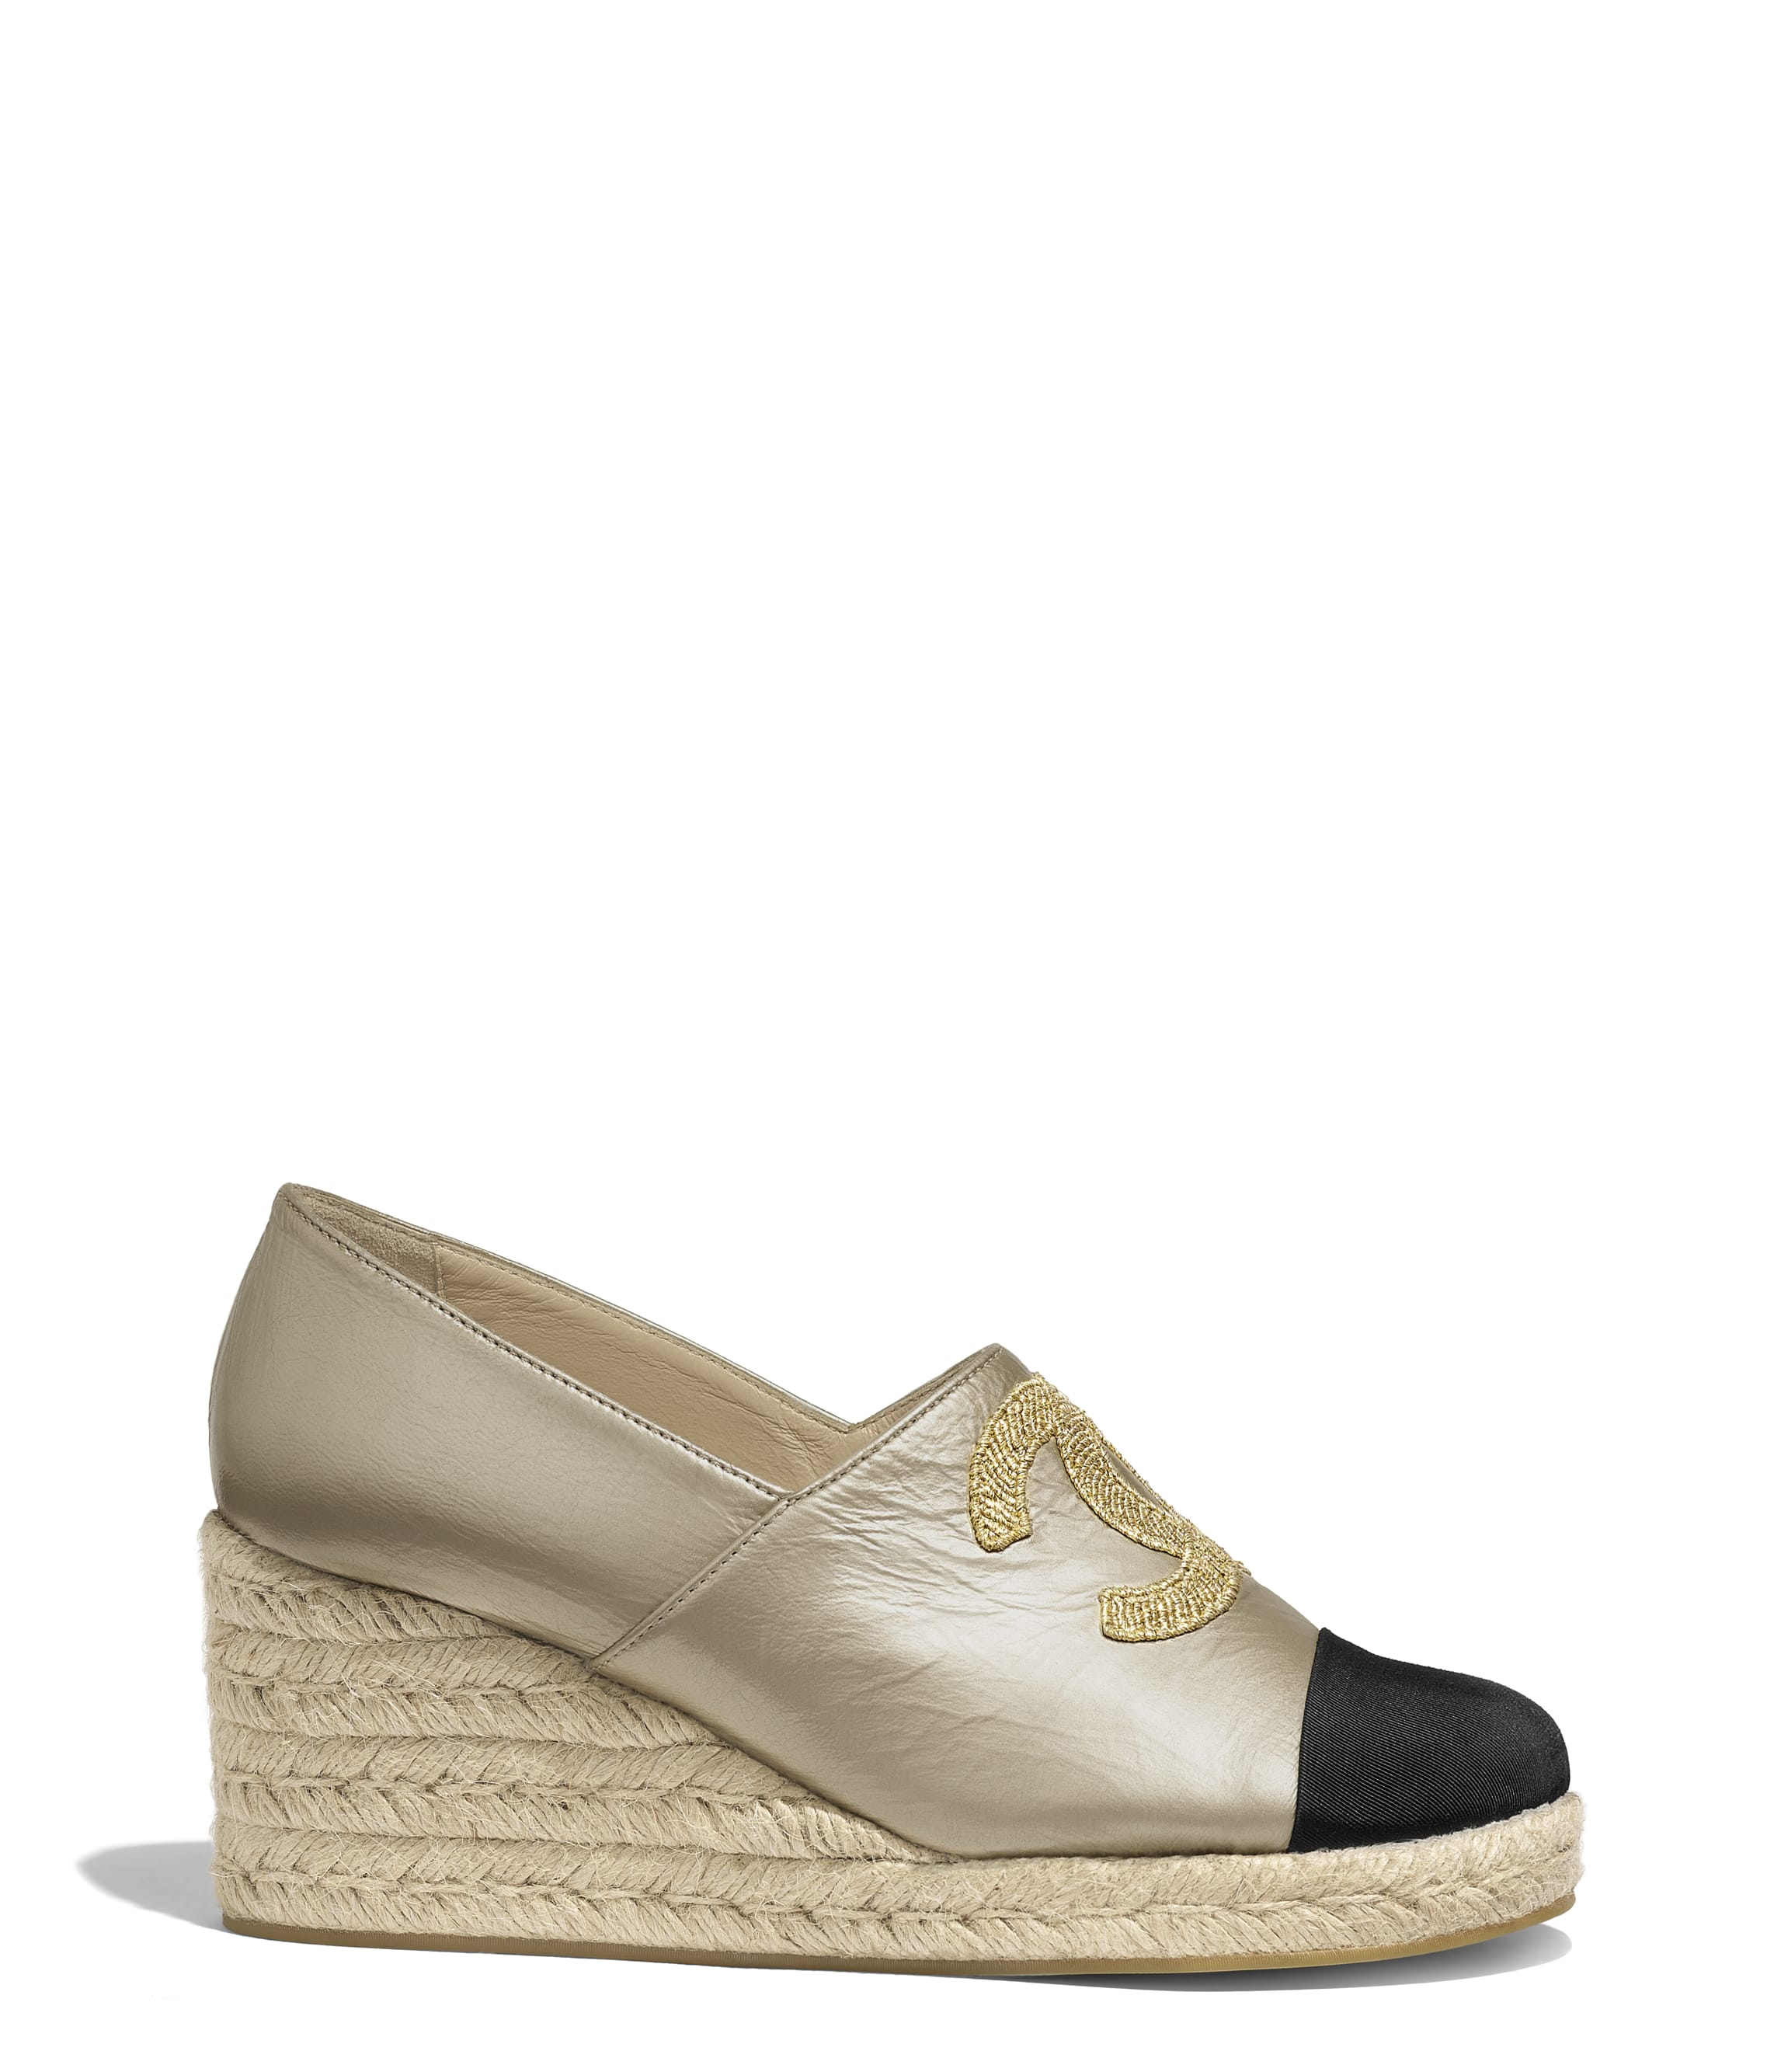 c3ed1a2ed62a6 Espadrilles - Chaussures - CHANEL